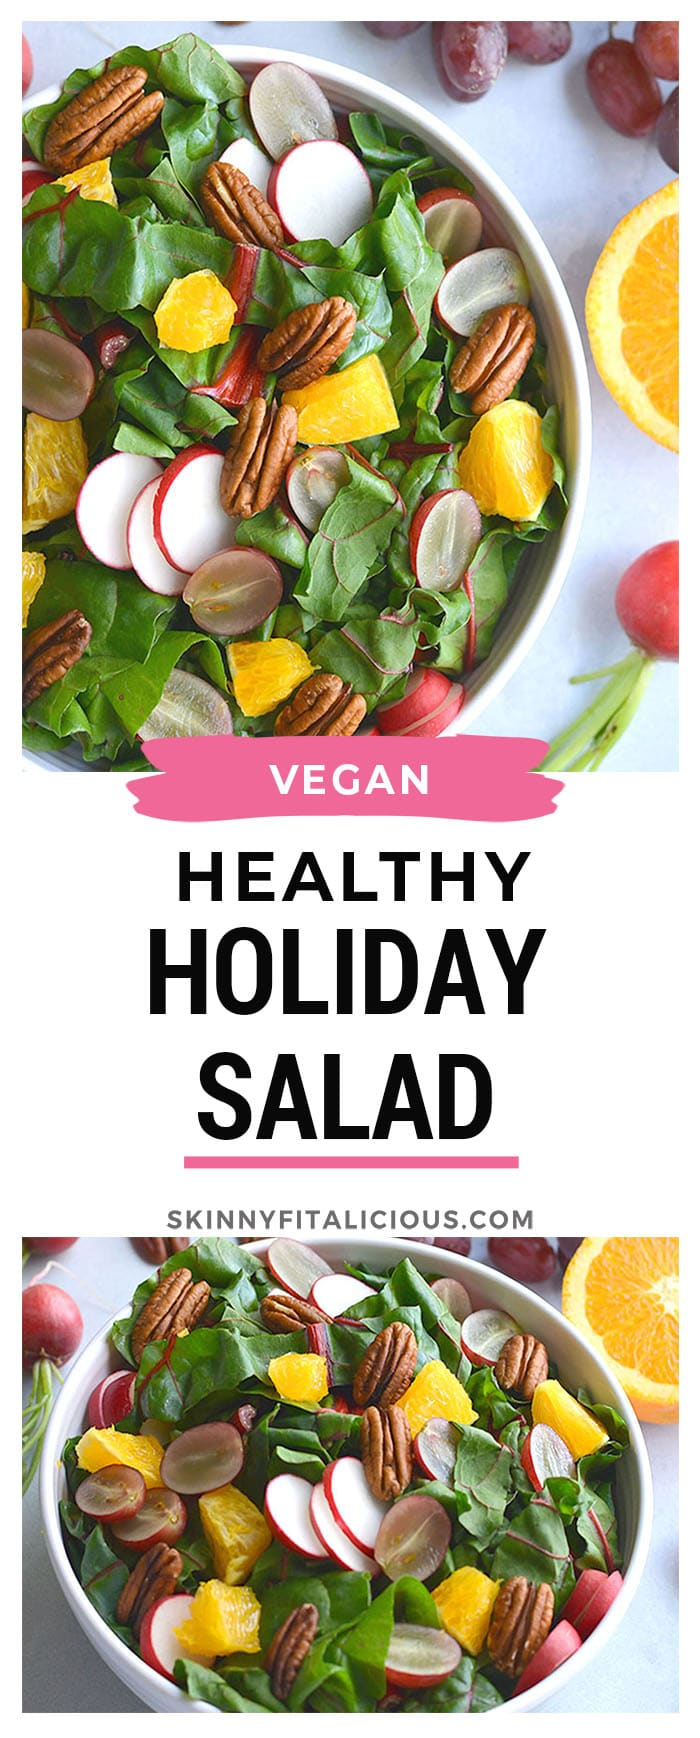 Healthy Holiday Salad! This colorful salad is packed with fresh produce and dressed with an anti-inflammatory turmeric apple cider vinegar dressing. A holiday side salad that's versatile and nutritious! Vegan + Paleo + Gluten Free + Low Calorie